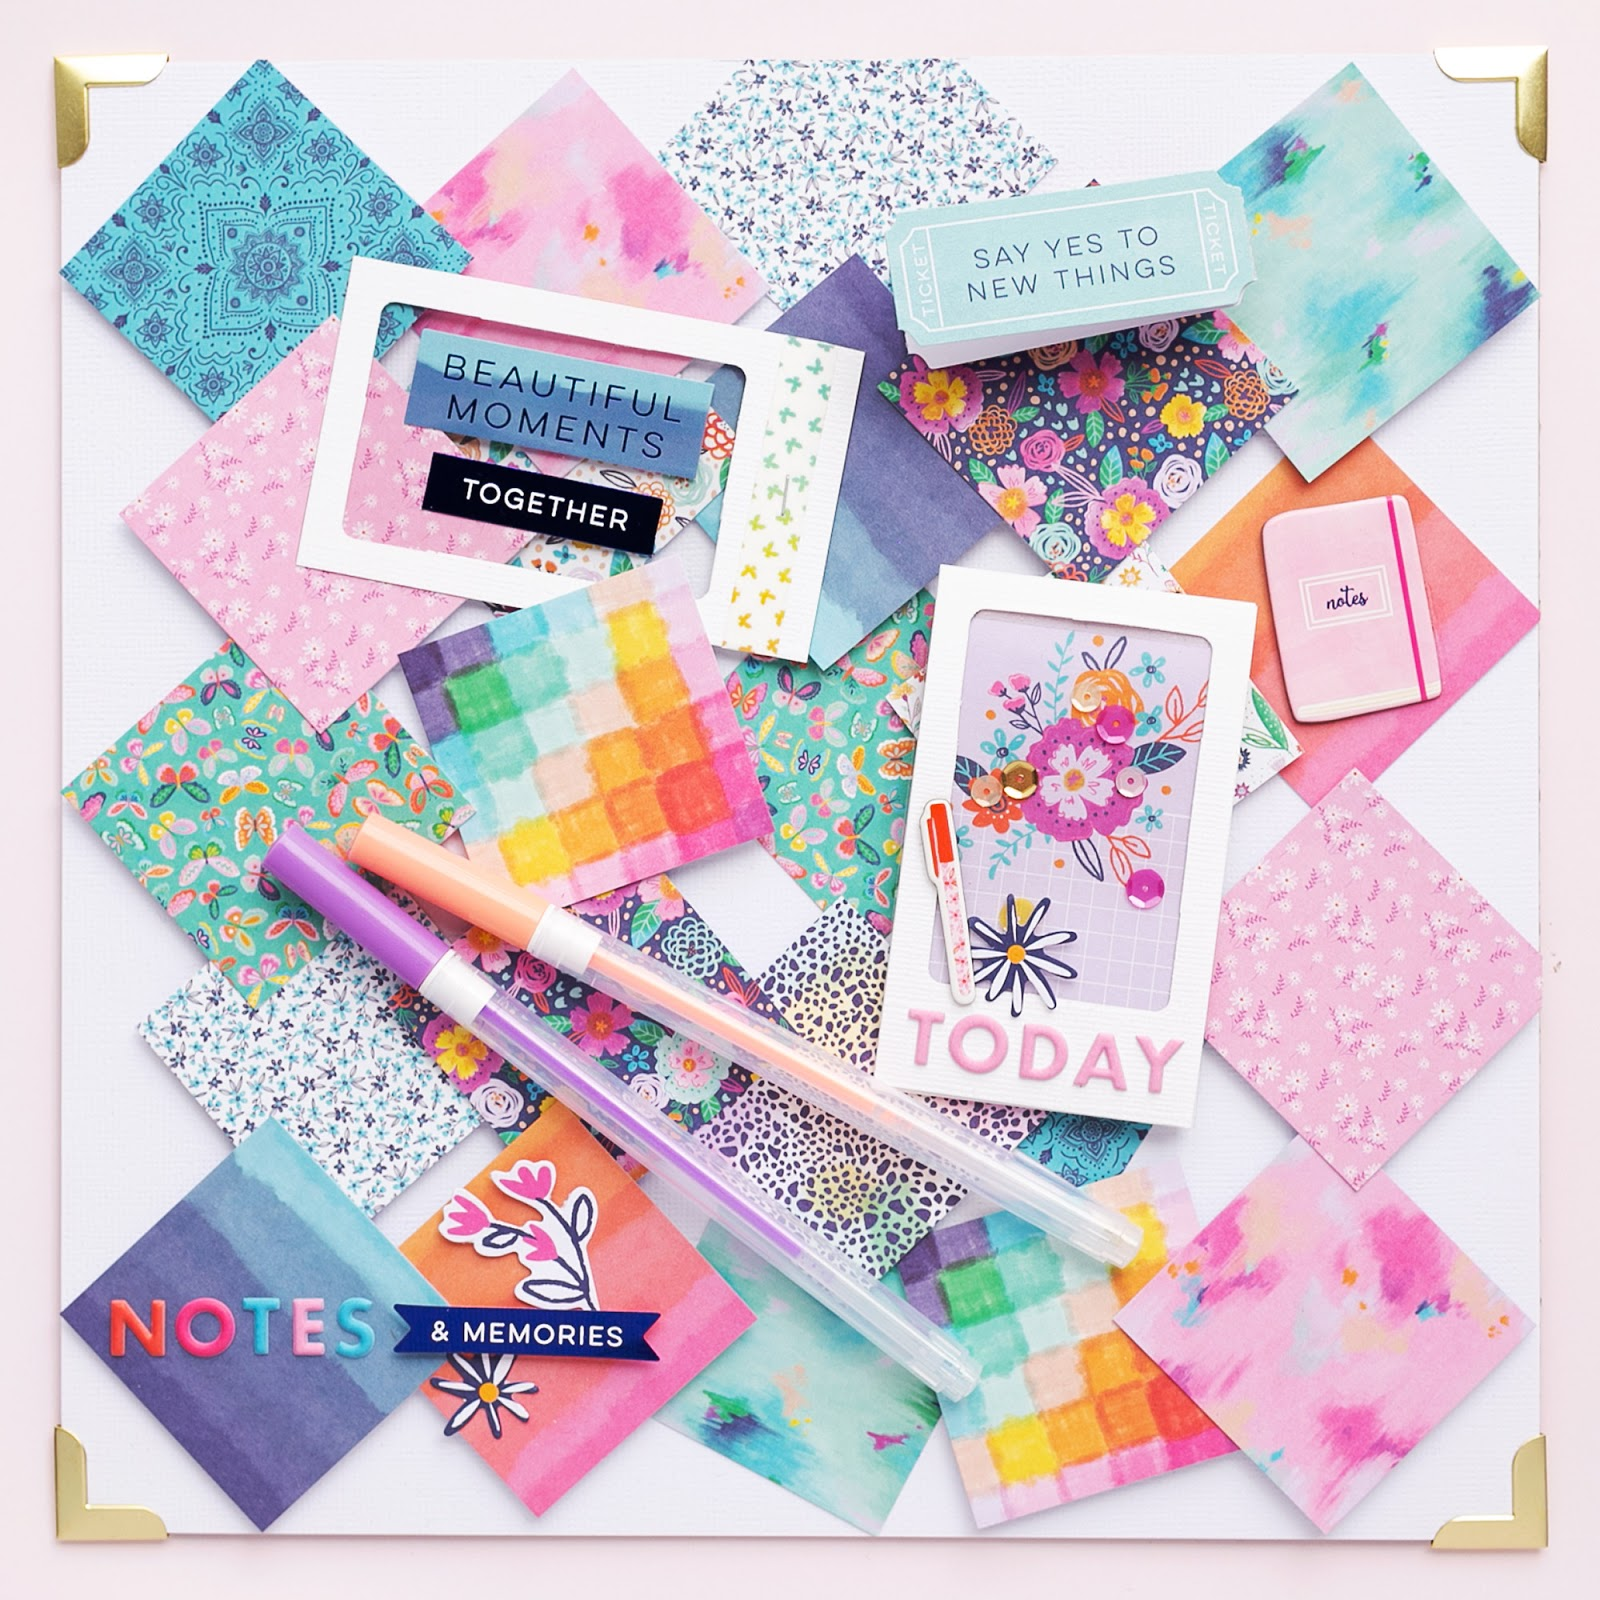 Pretty Memo Board with frames made with the Frame Punch Board from We R Memory Keepers